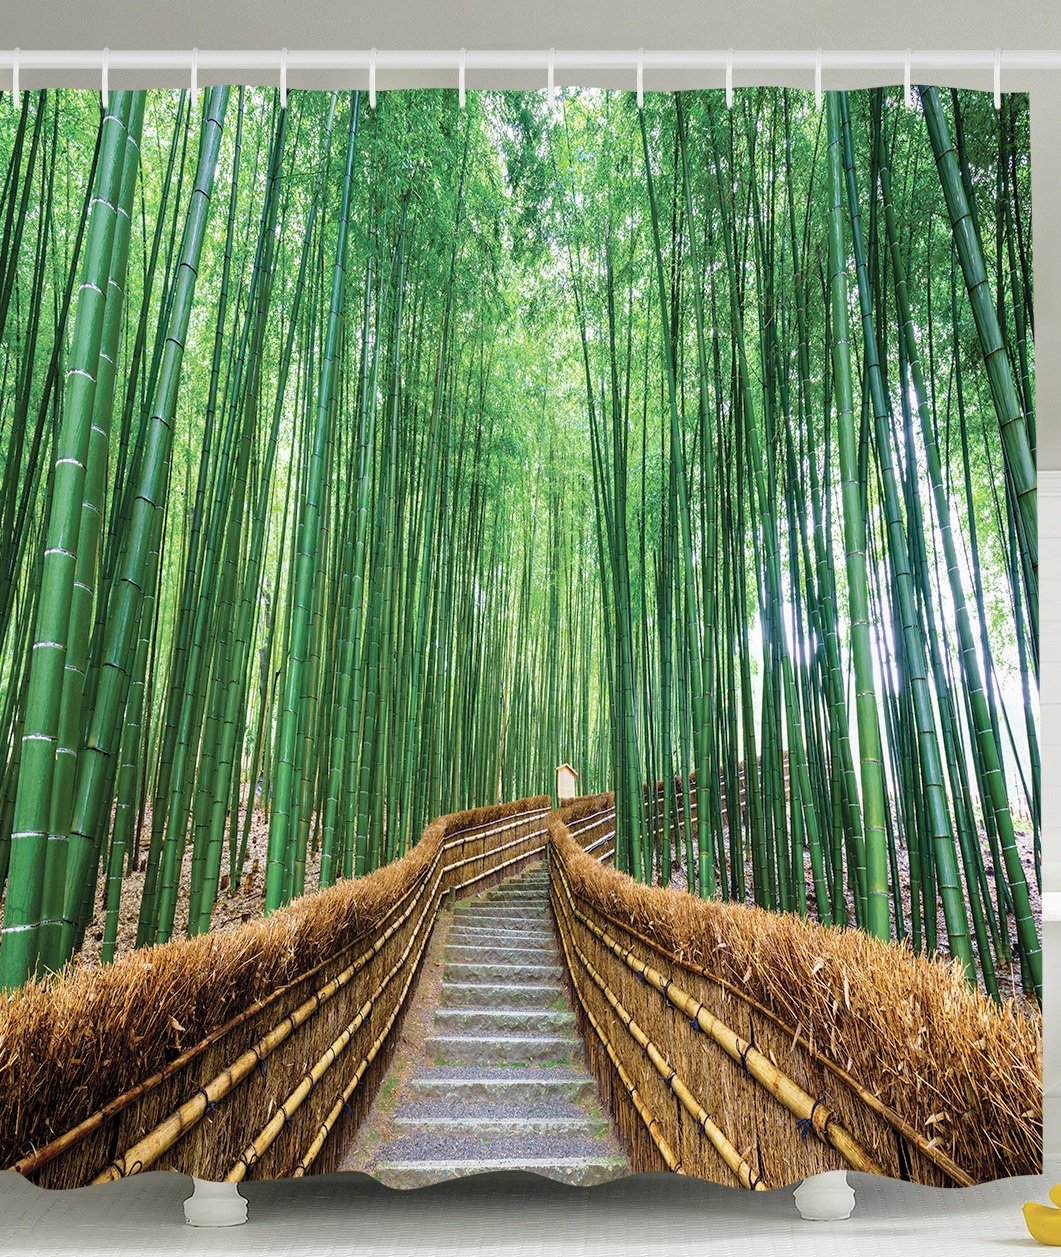 Ambesonne Colorful Tropical Decor Wildlife Shower Curtain Bridge Over Tree Bamboos Bathroom Art Decorations for Women and Men Nature View with Exotic Landscape Zen Spa Yoga Design, Green Brown Gray